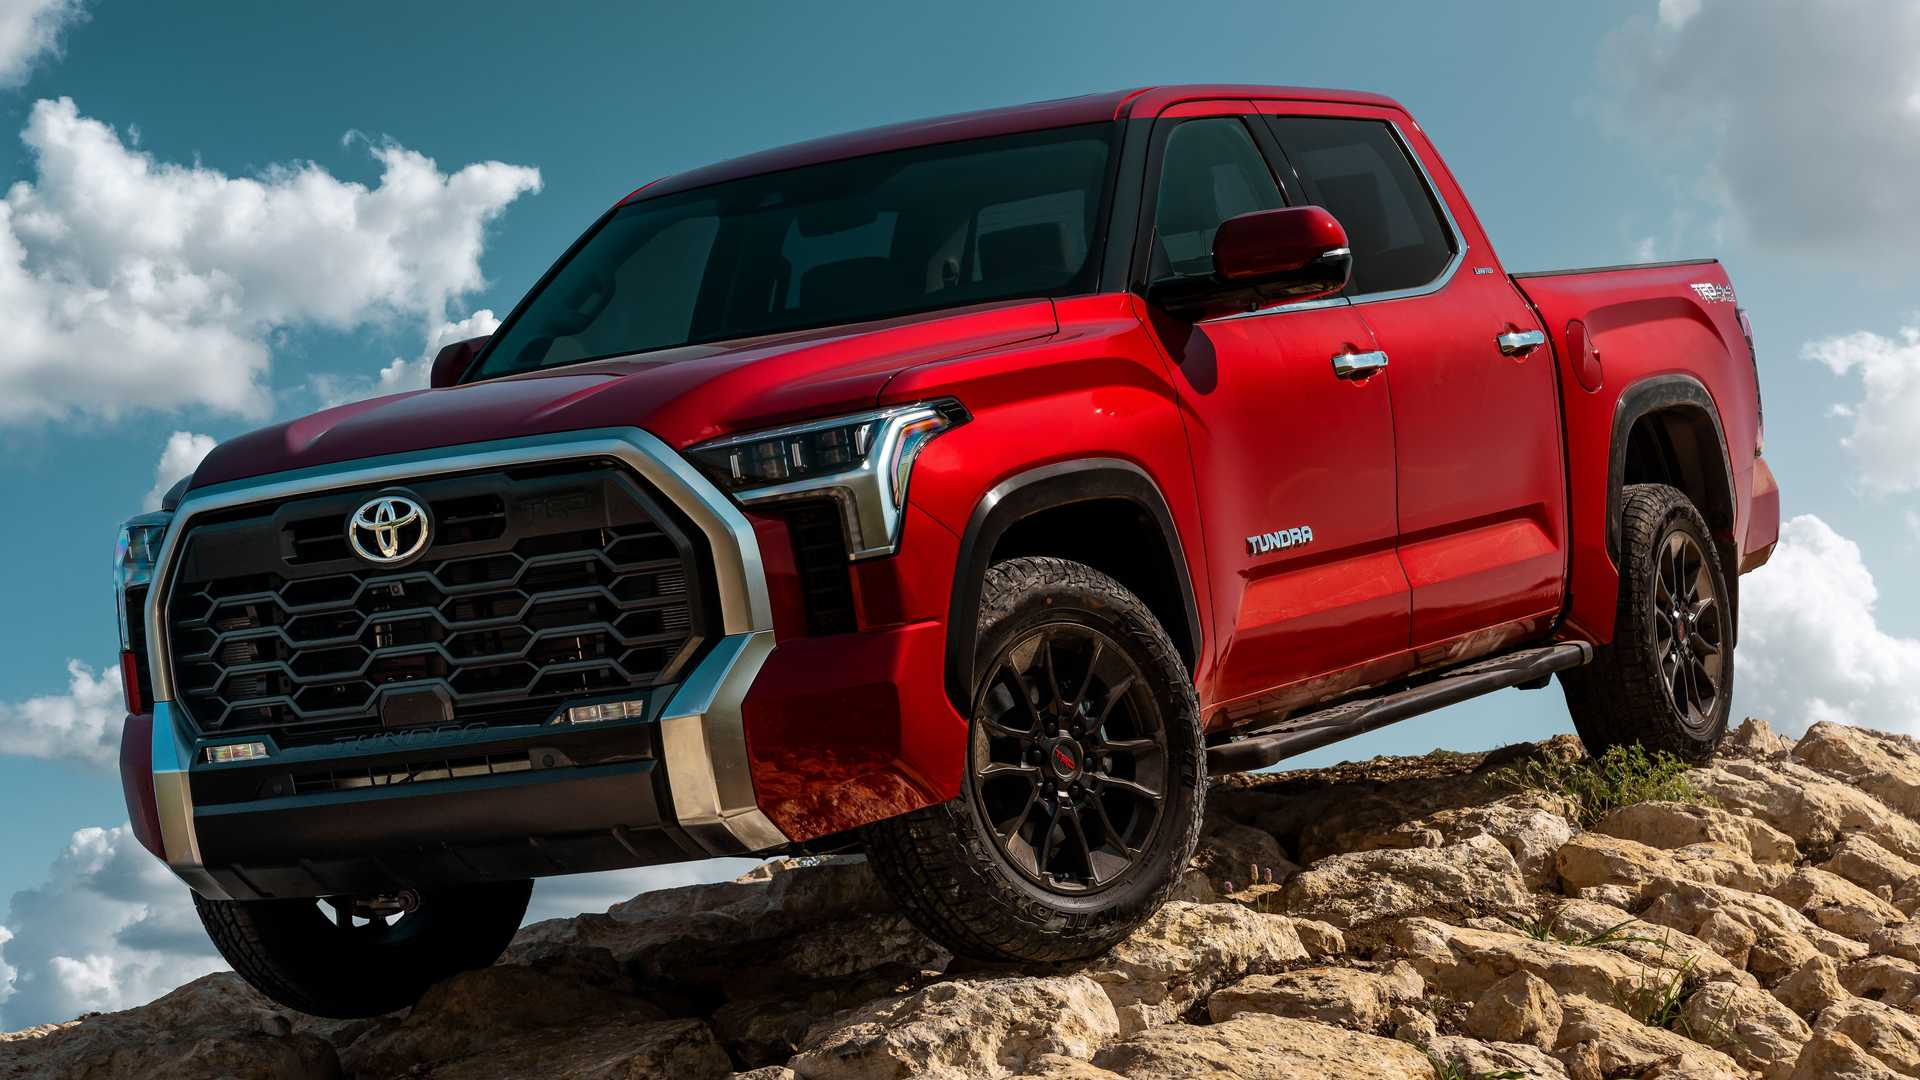 The second generation of the Toyota Tundra had been in production since November 2006, and the next one has only just debuted on official terms.